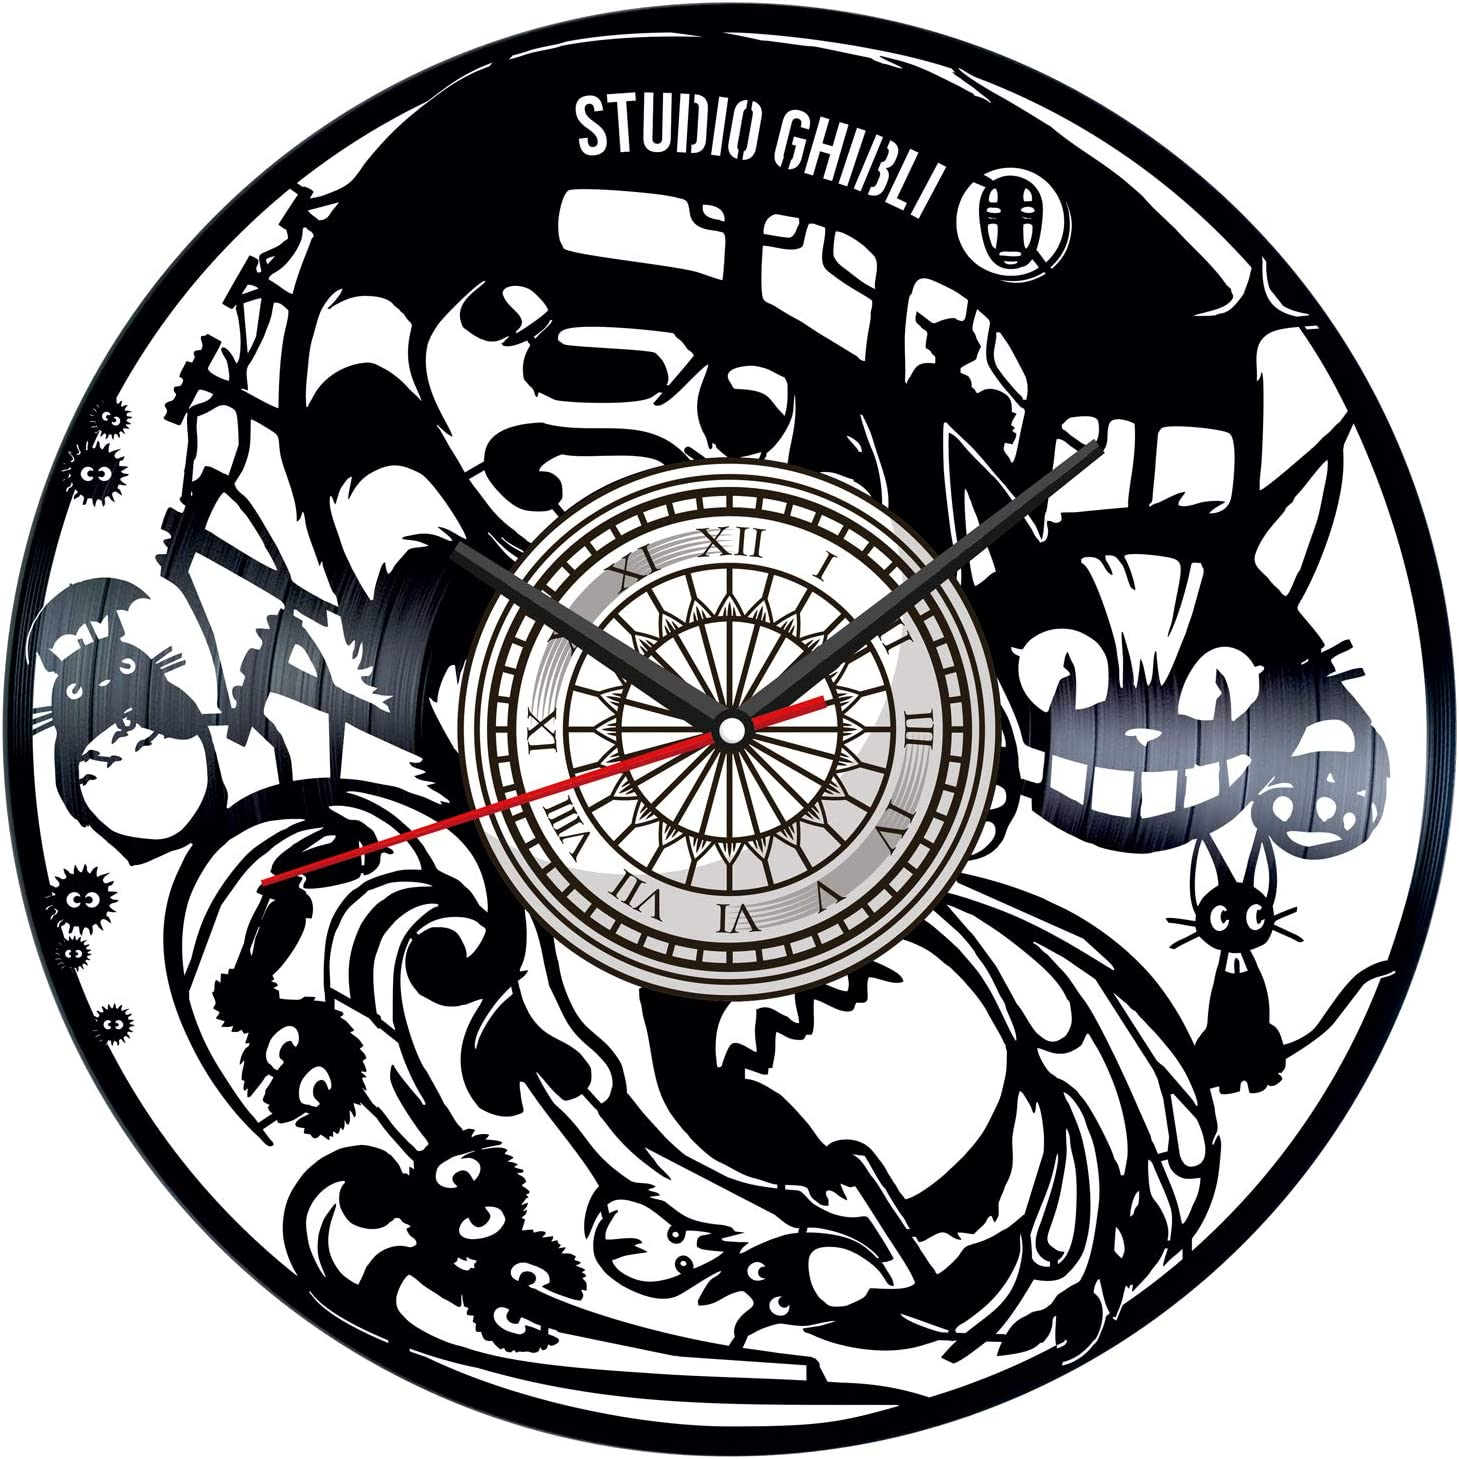 Studio Ghibli Vinyl Record Wall Clock Poster - Vintage Home Decor Kitchen Bedroom Living Room Office - Unique Handmade Gift for Men Woman Friends Boys - 12 inches